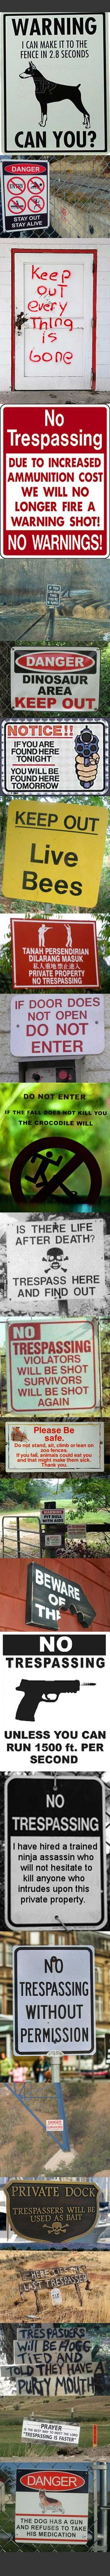 Brutally honest no trespassing signs